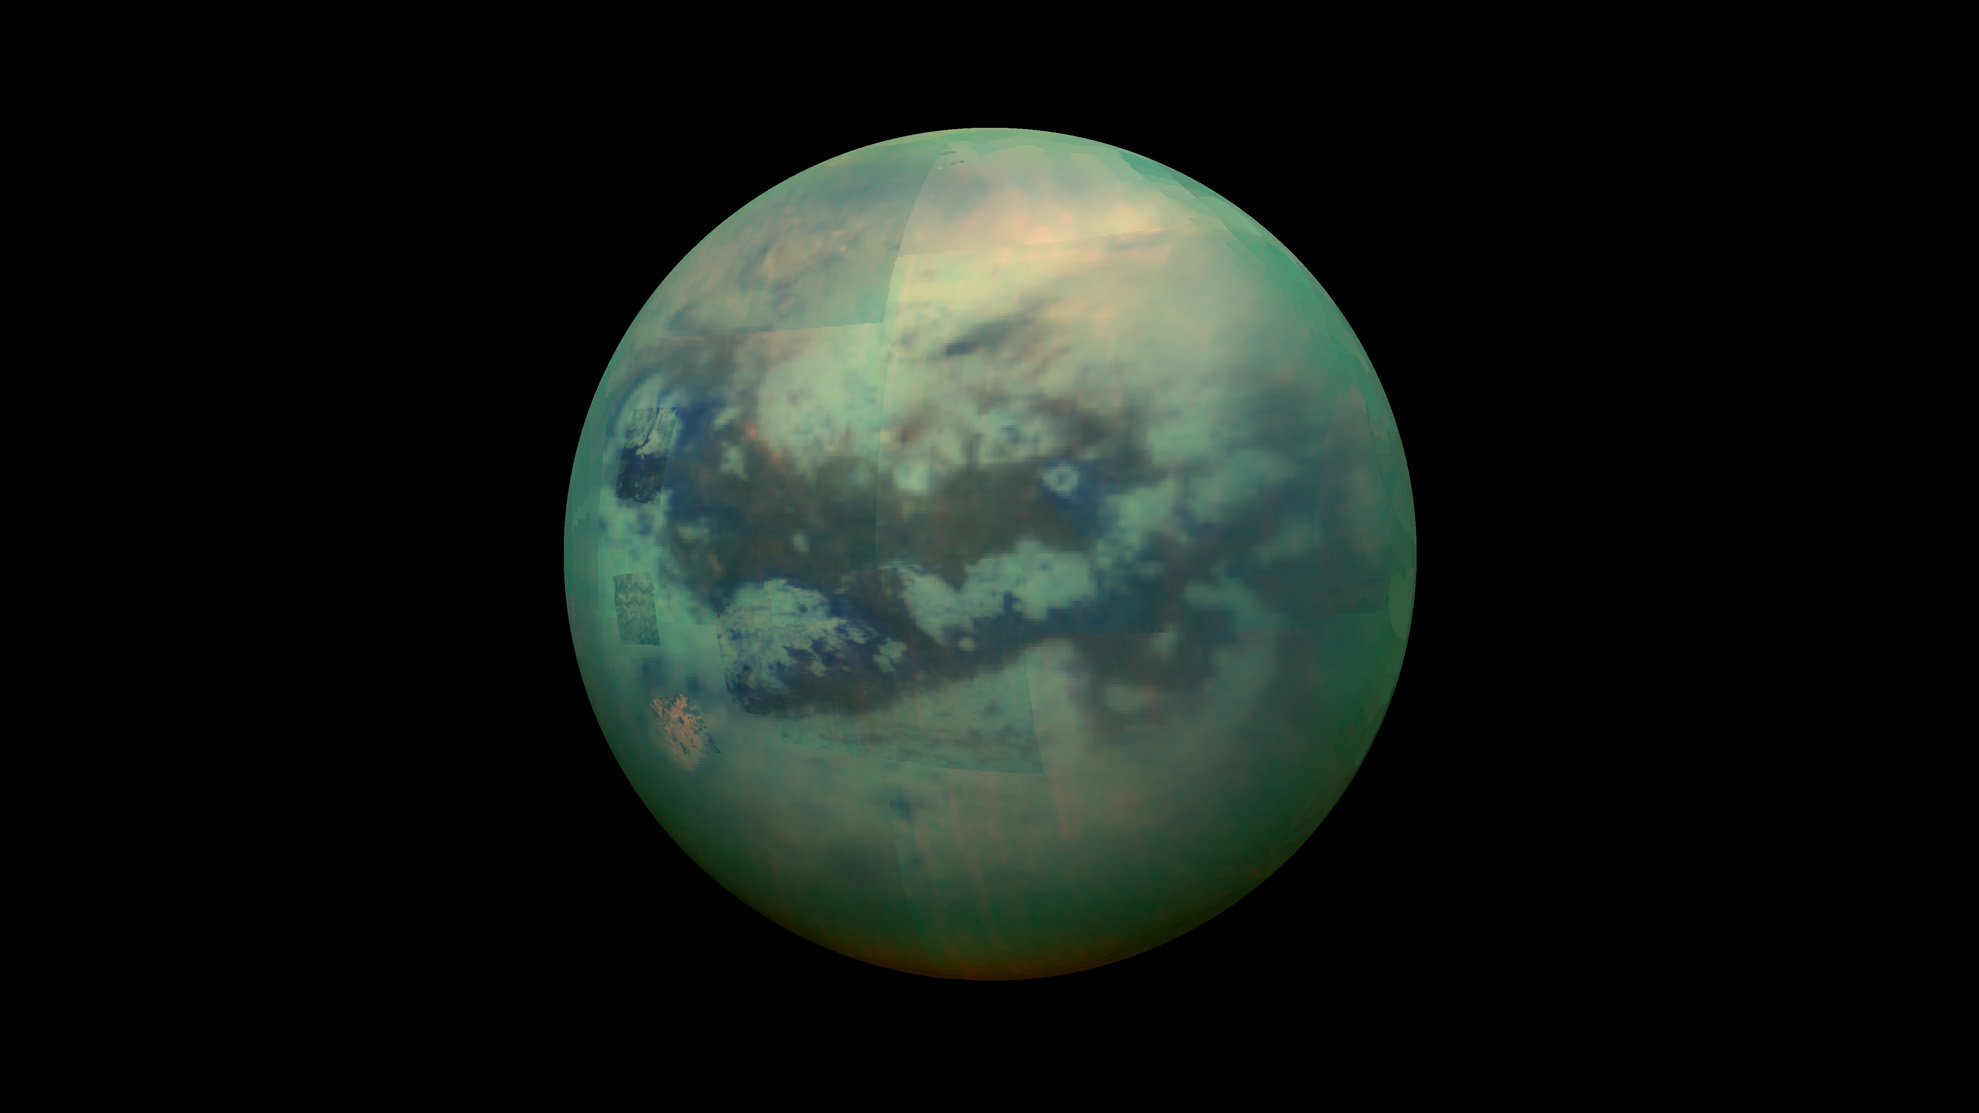 Titan has a liquid cycle, but it's definitely not water